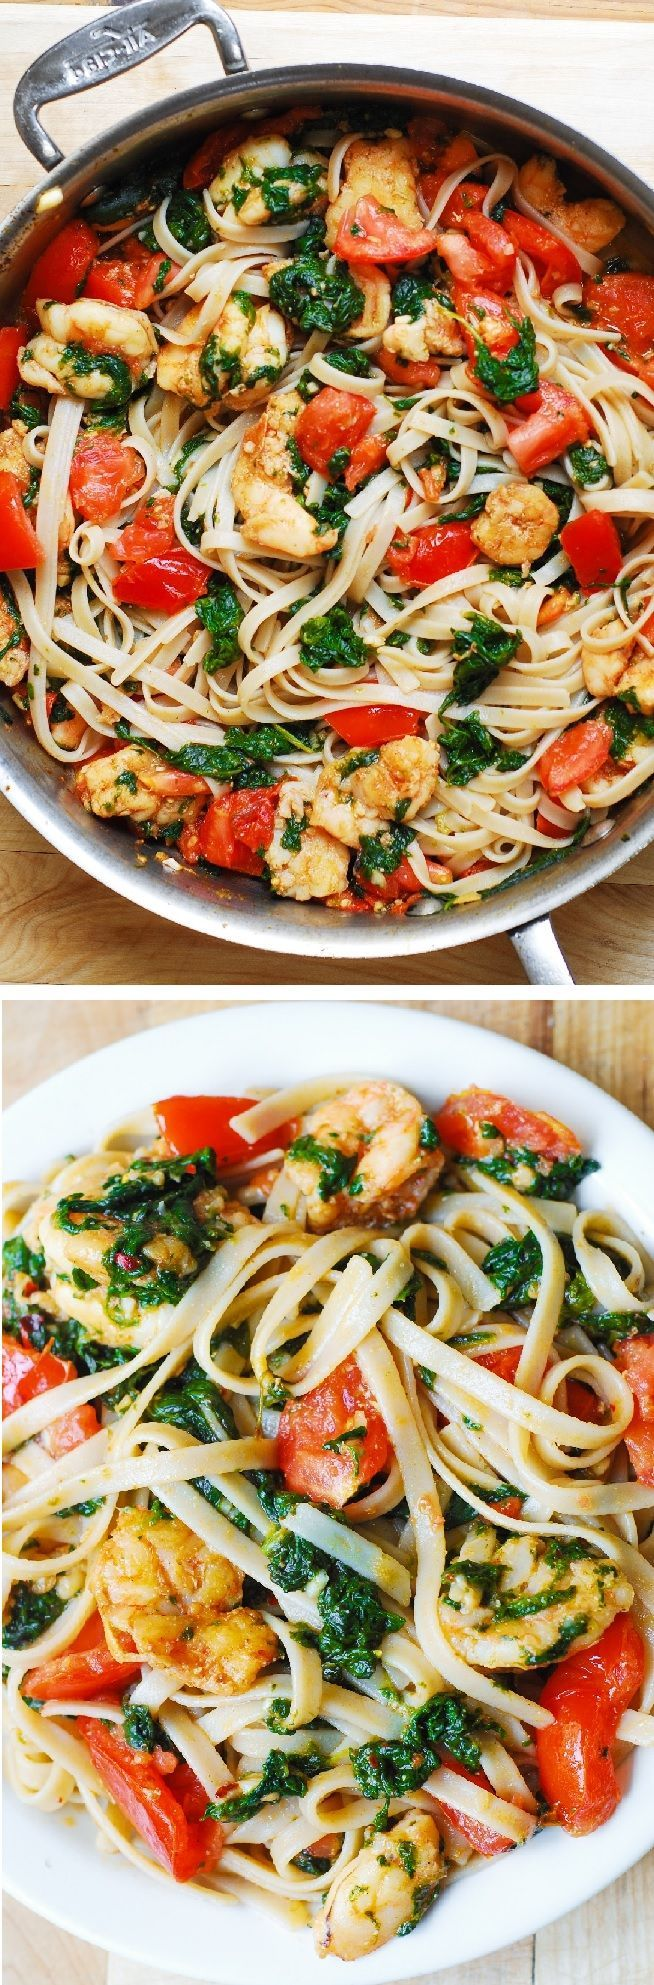 Shrimp, Fresh Tomatoes, and Spinach with Fettuccine Pasta in Garlic Sauce. So Refreshing, Spicy, and Italian! #healthy #pasta #recipes